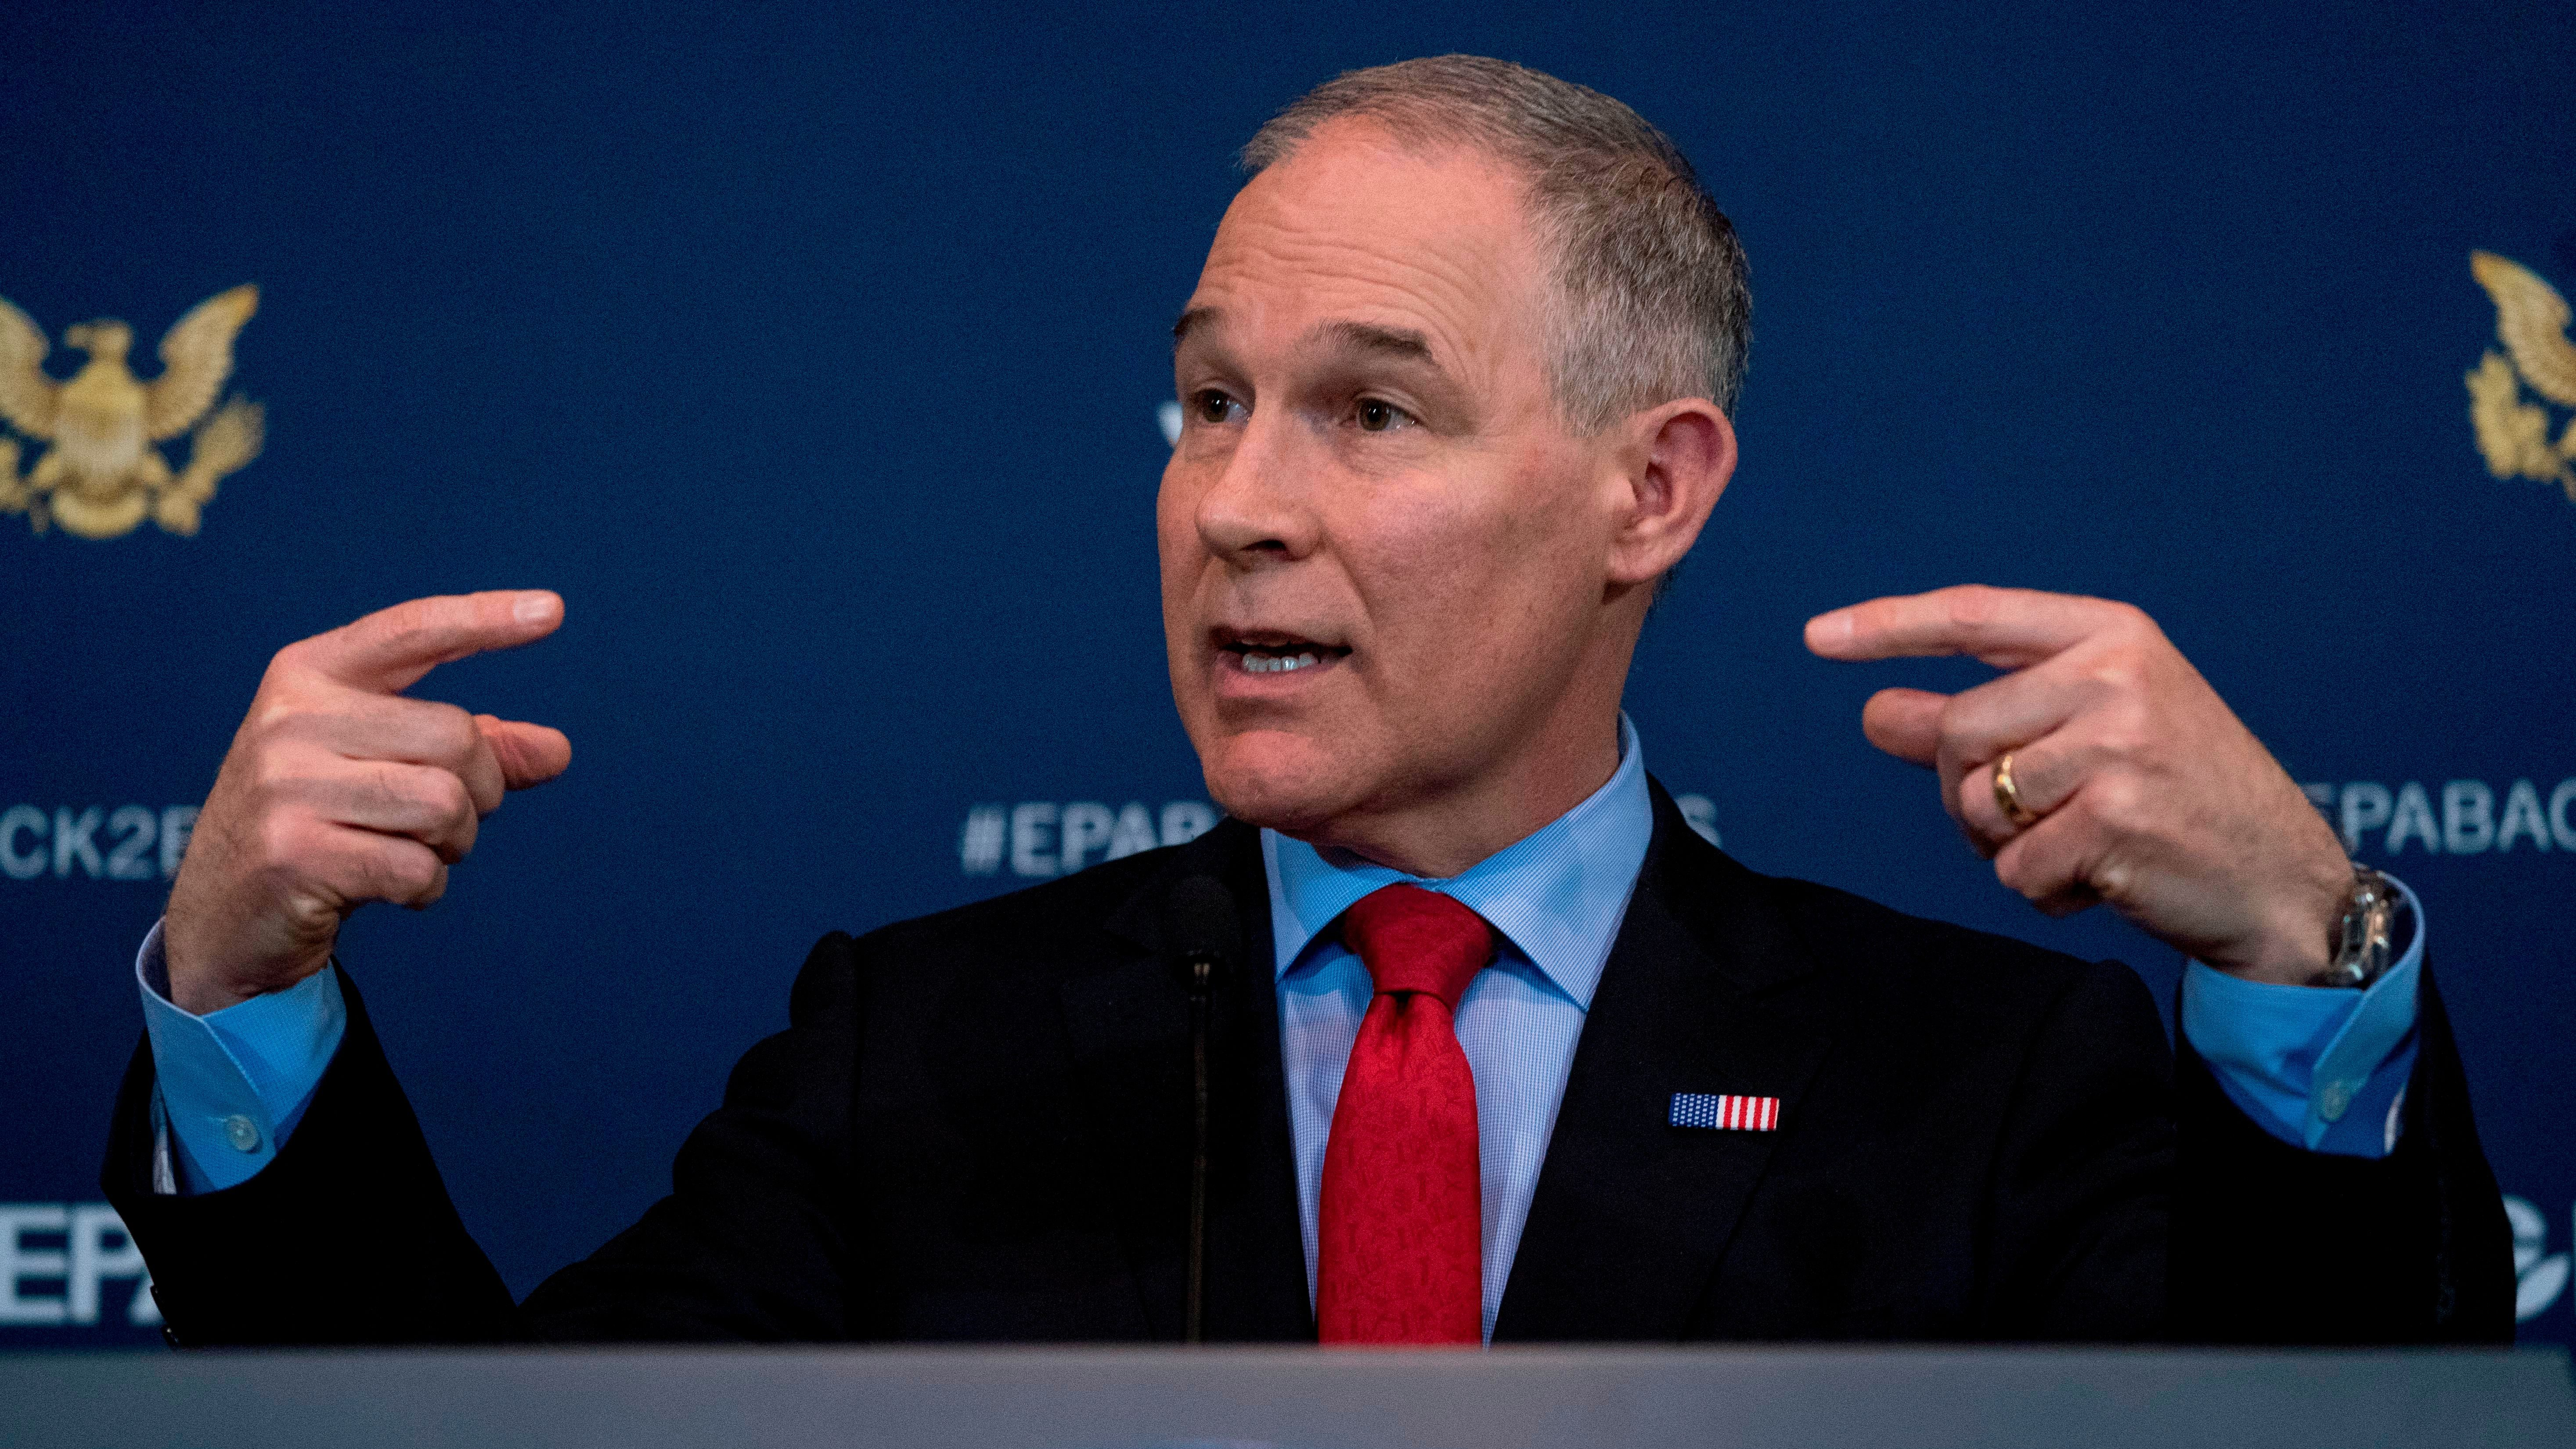 Corruption and ethics scandals have plagued EPA administrator Scott Pruitt.